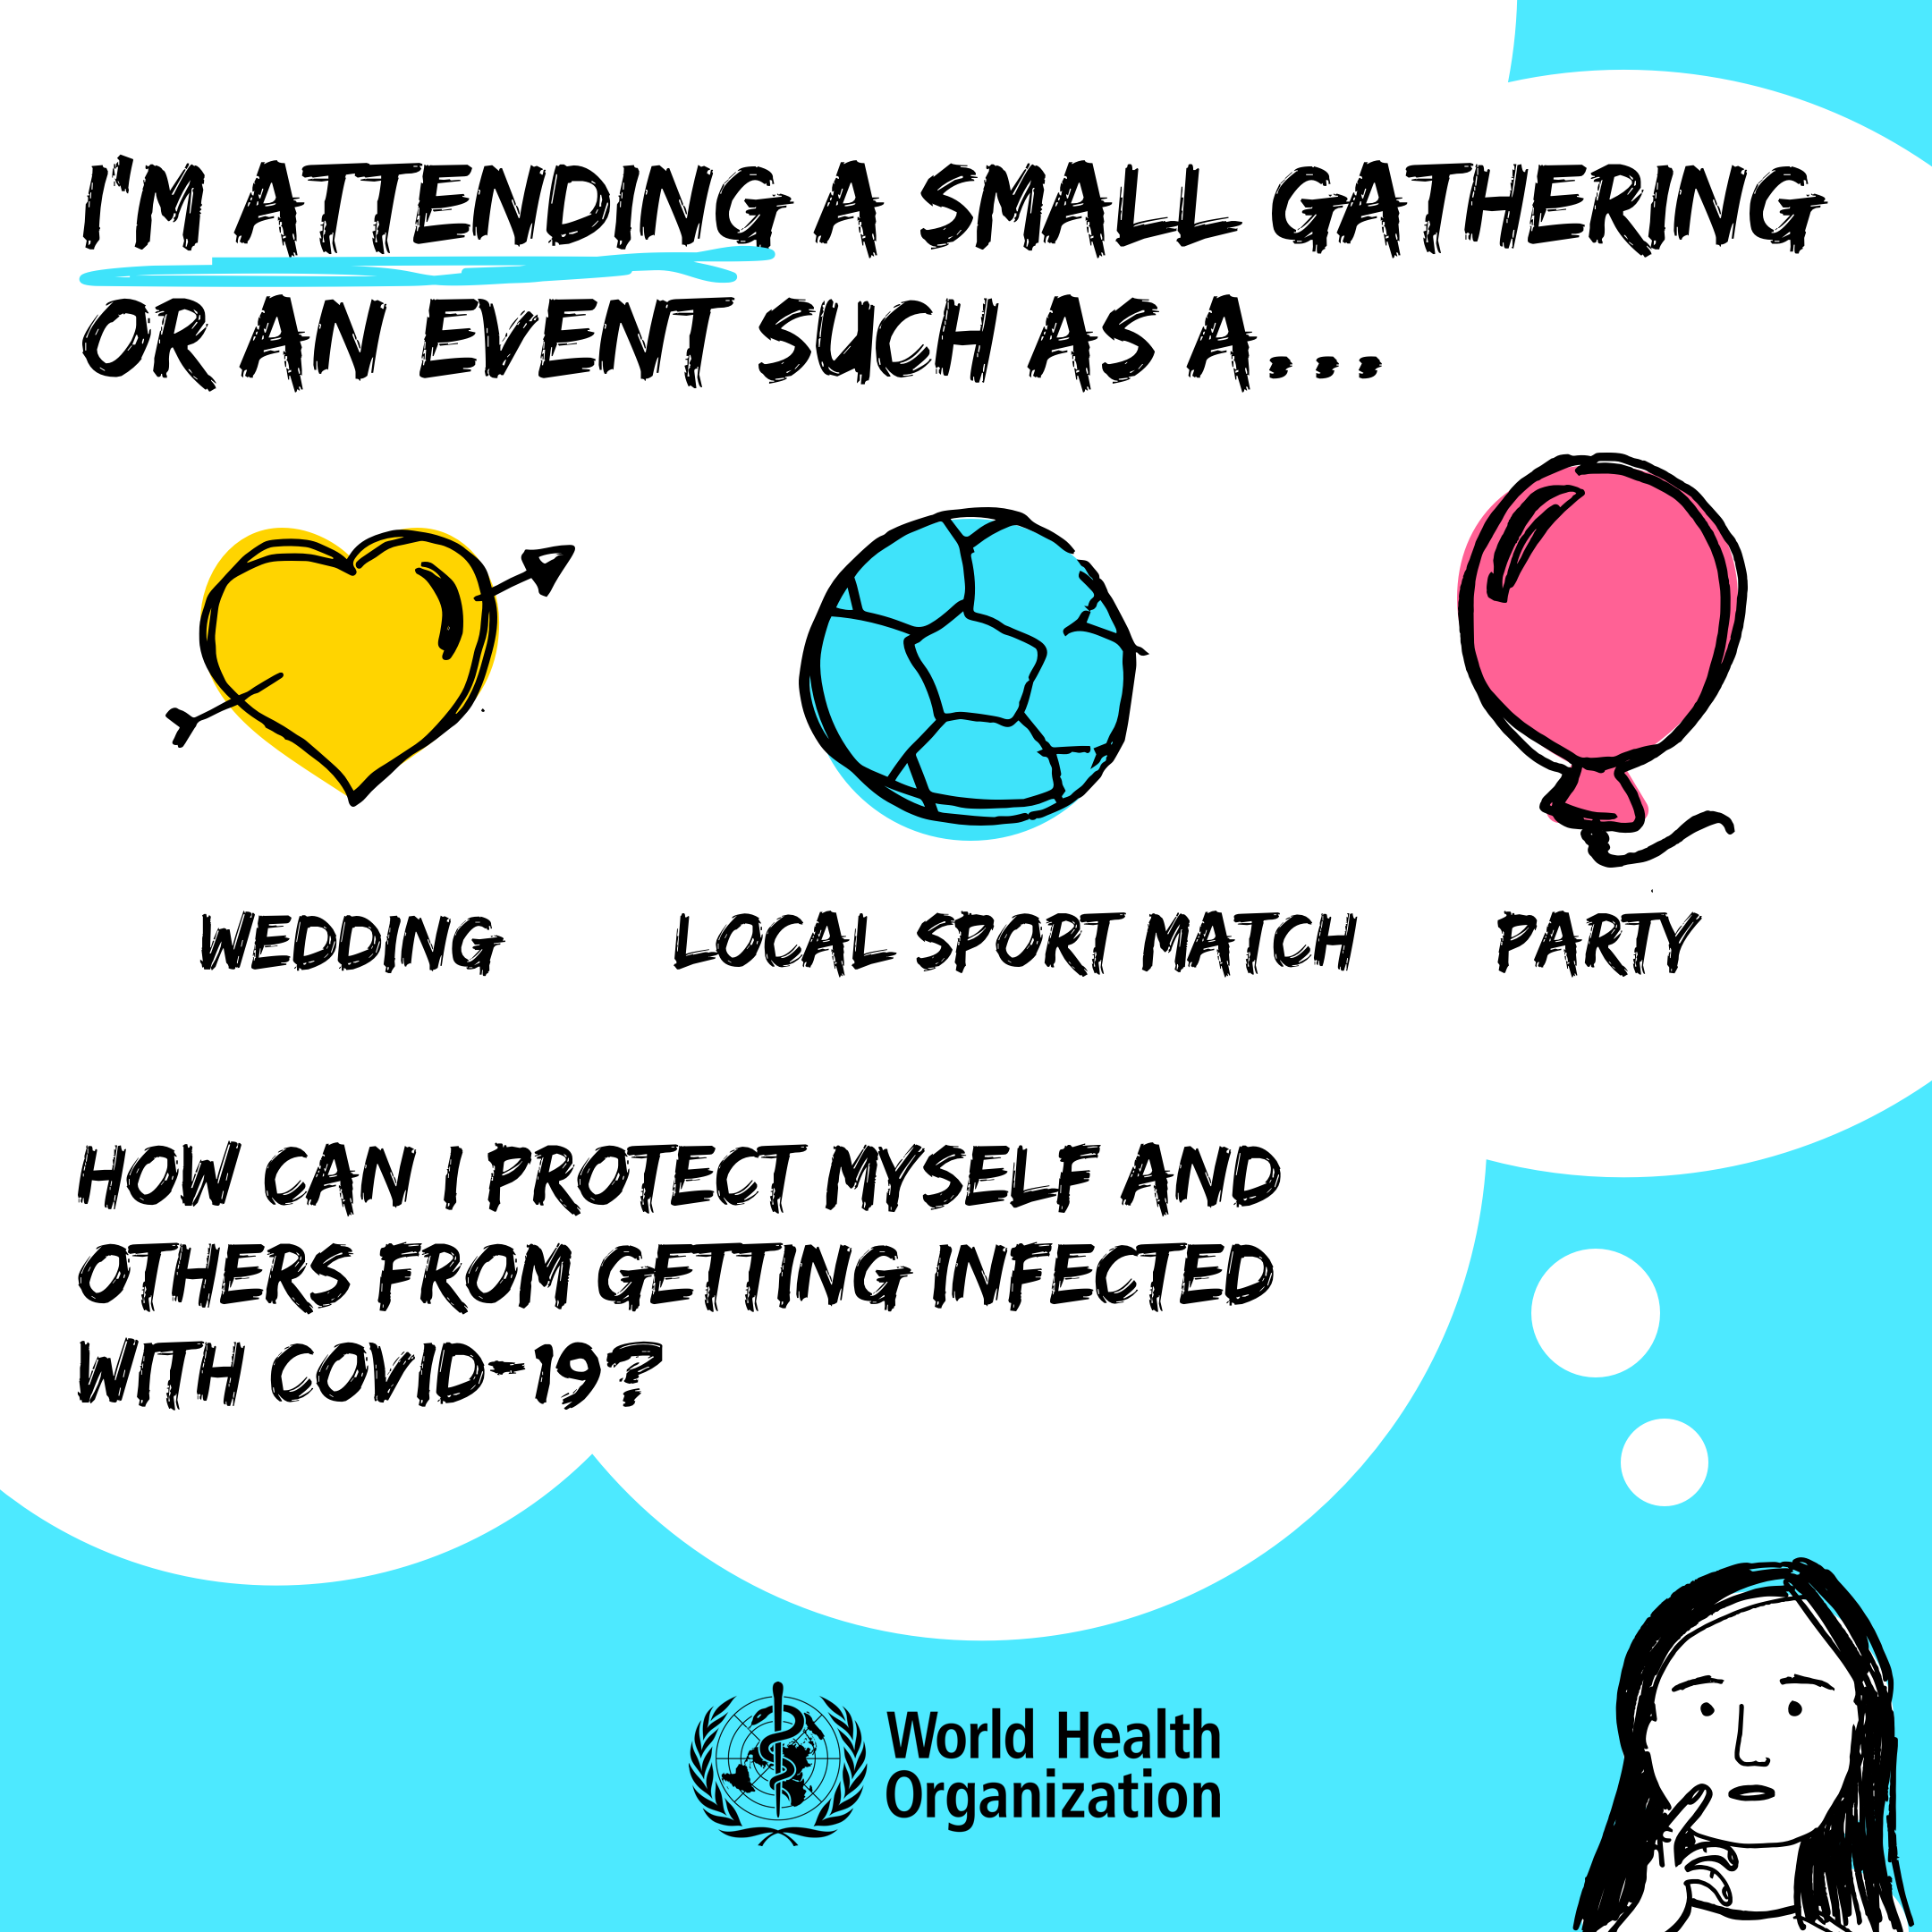 Are you attending a small gathering or event during